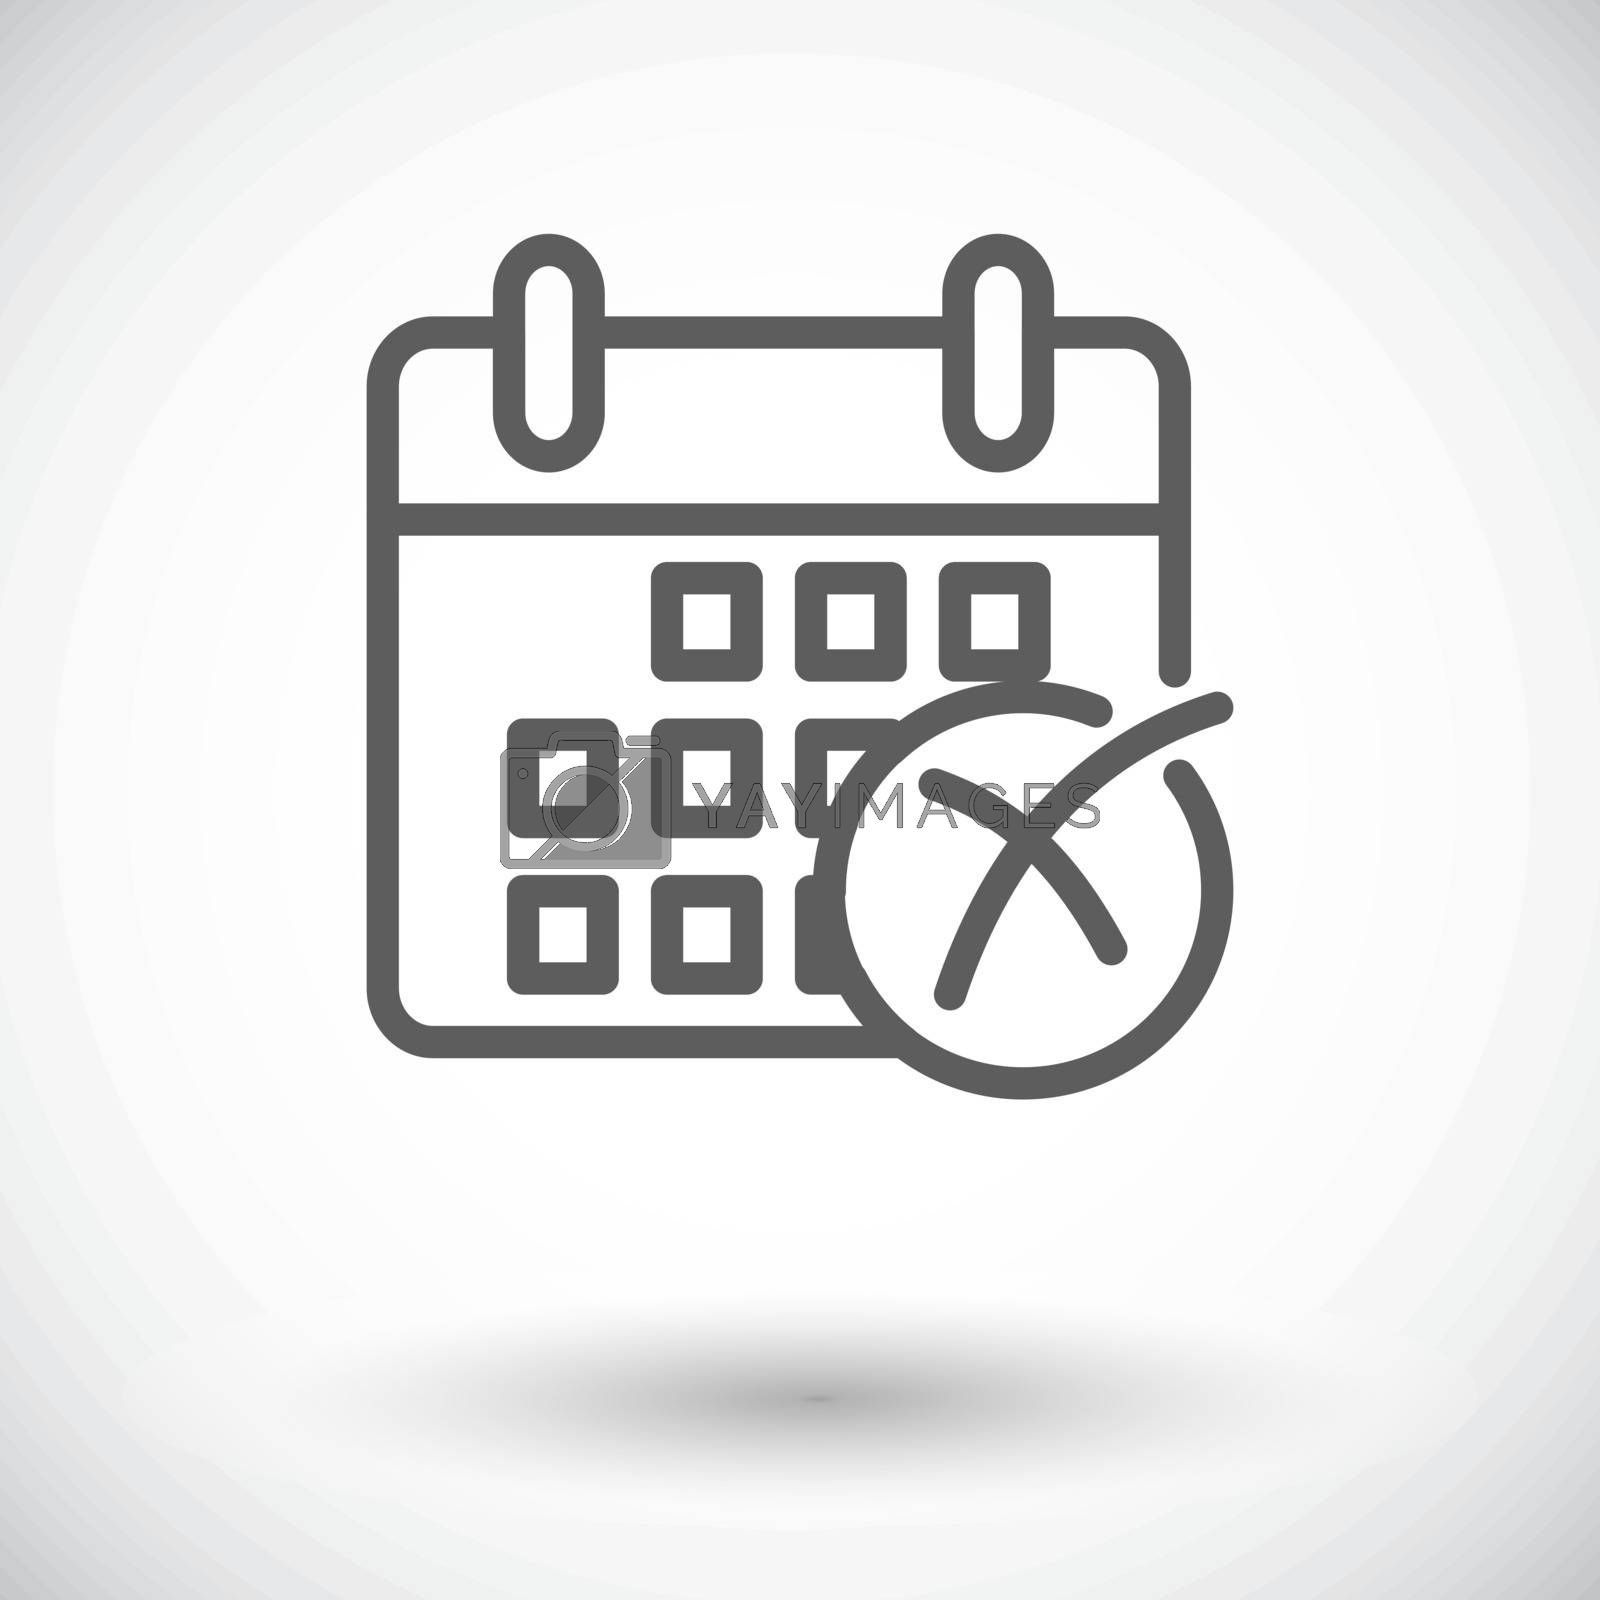 Calendar with cross. Single flat icon on white background. Vector illustration.